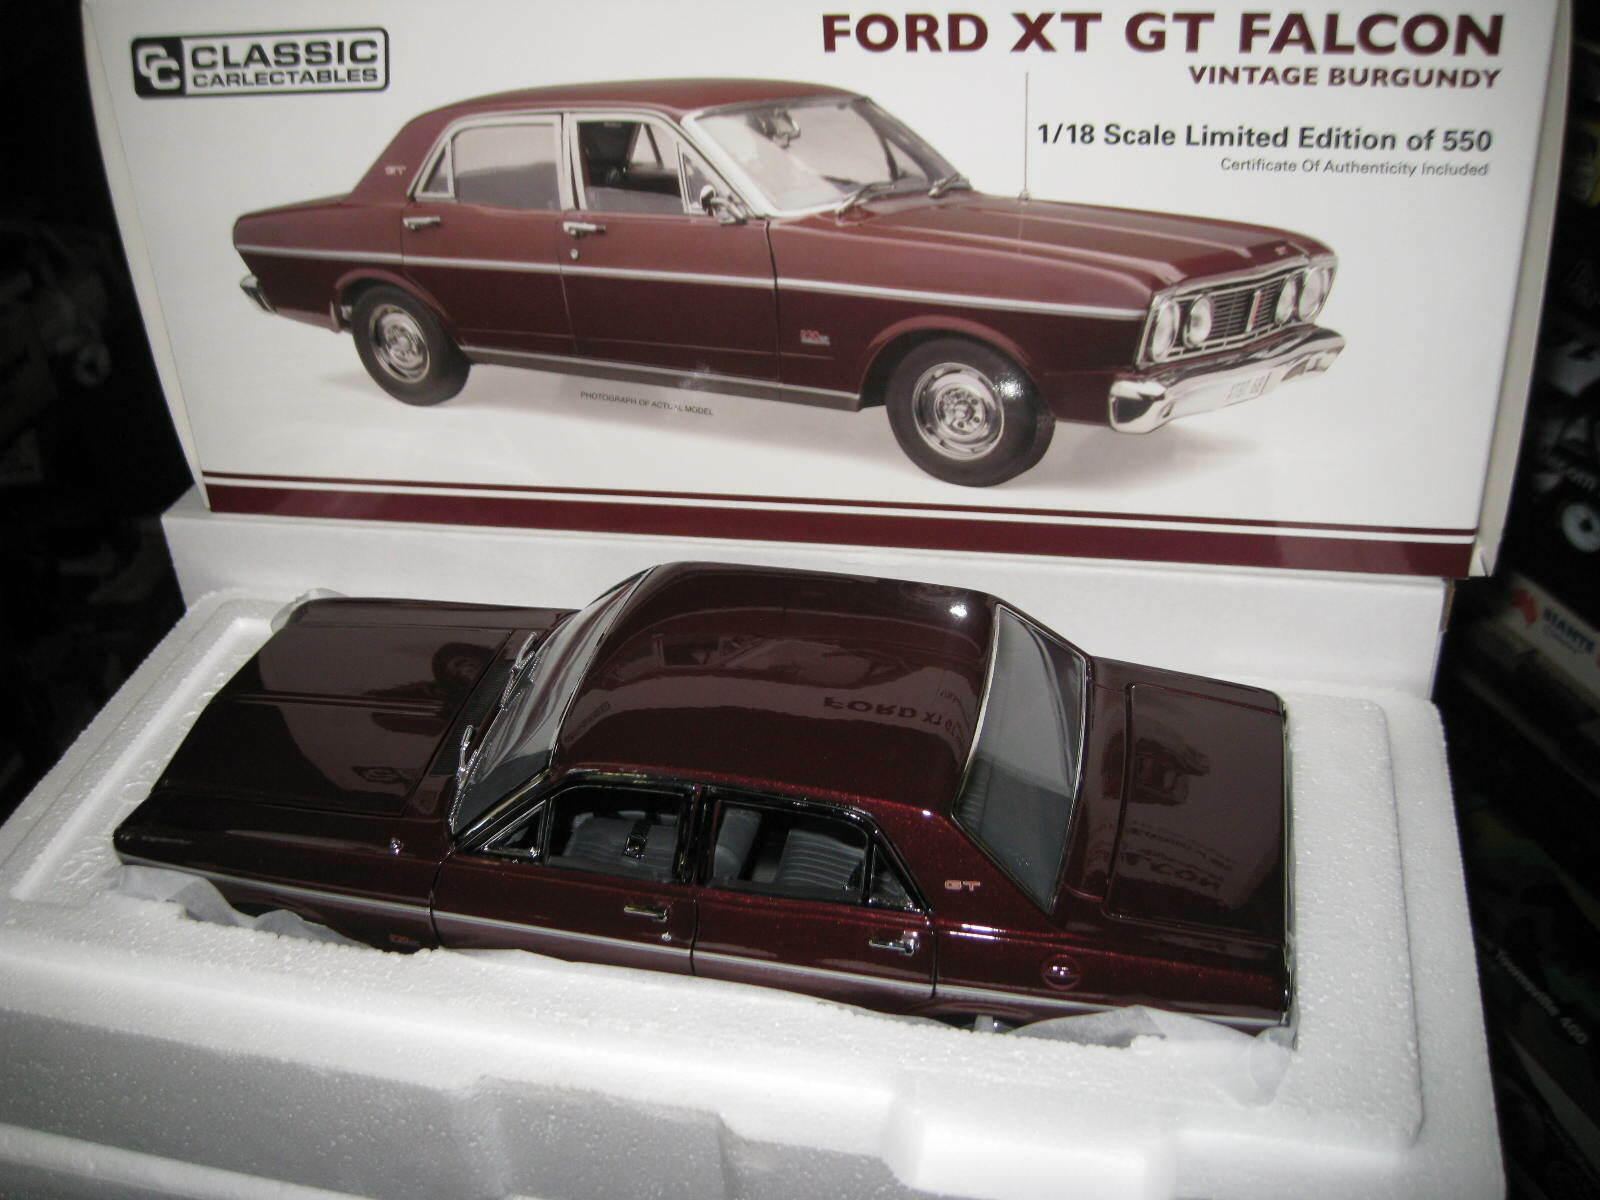 CLASSIC 1 18 1968 FORD FALCON XT GT VINTAGE BURGUNDY  LTD ED OF JUST 550   18679